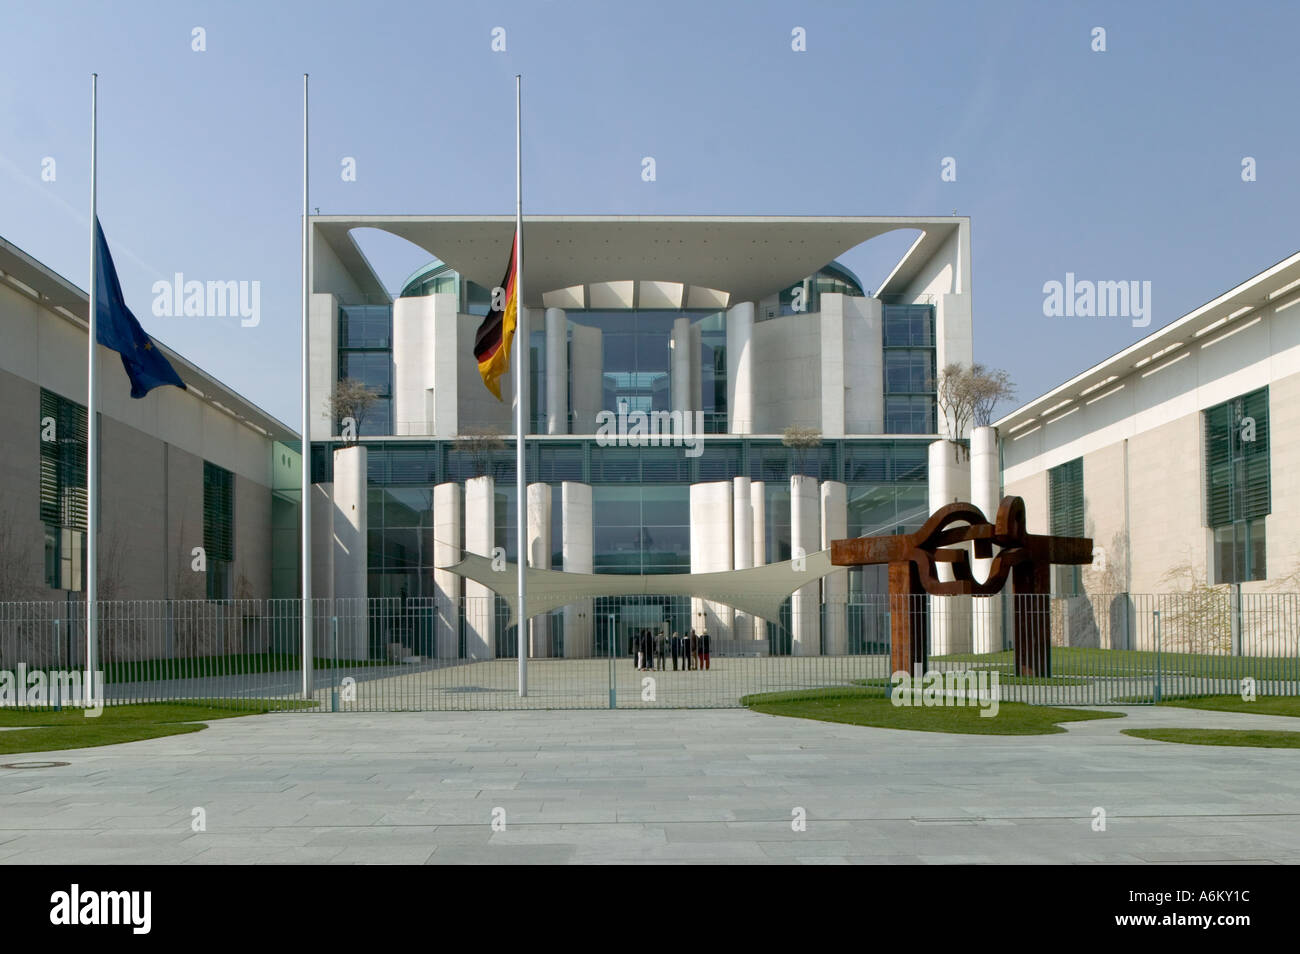 German Federal Chancellery, Berlin. Stone paved courtyard with Eduardo Chillida's sculpture on the right. - Stock Image